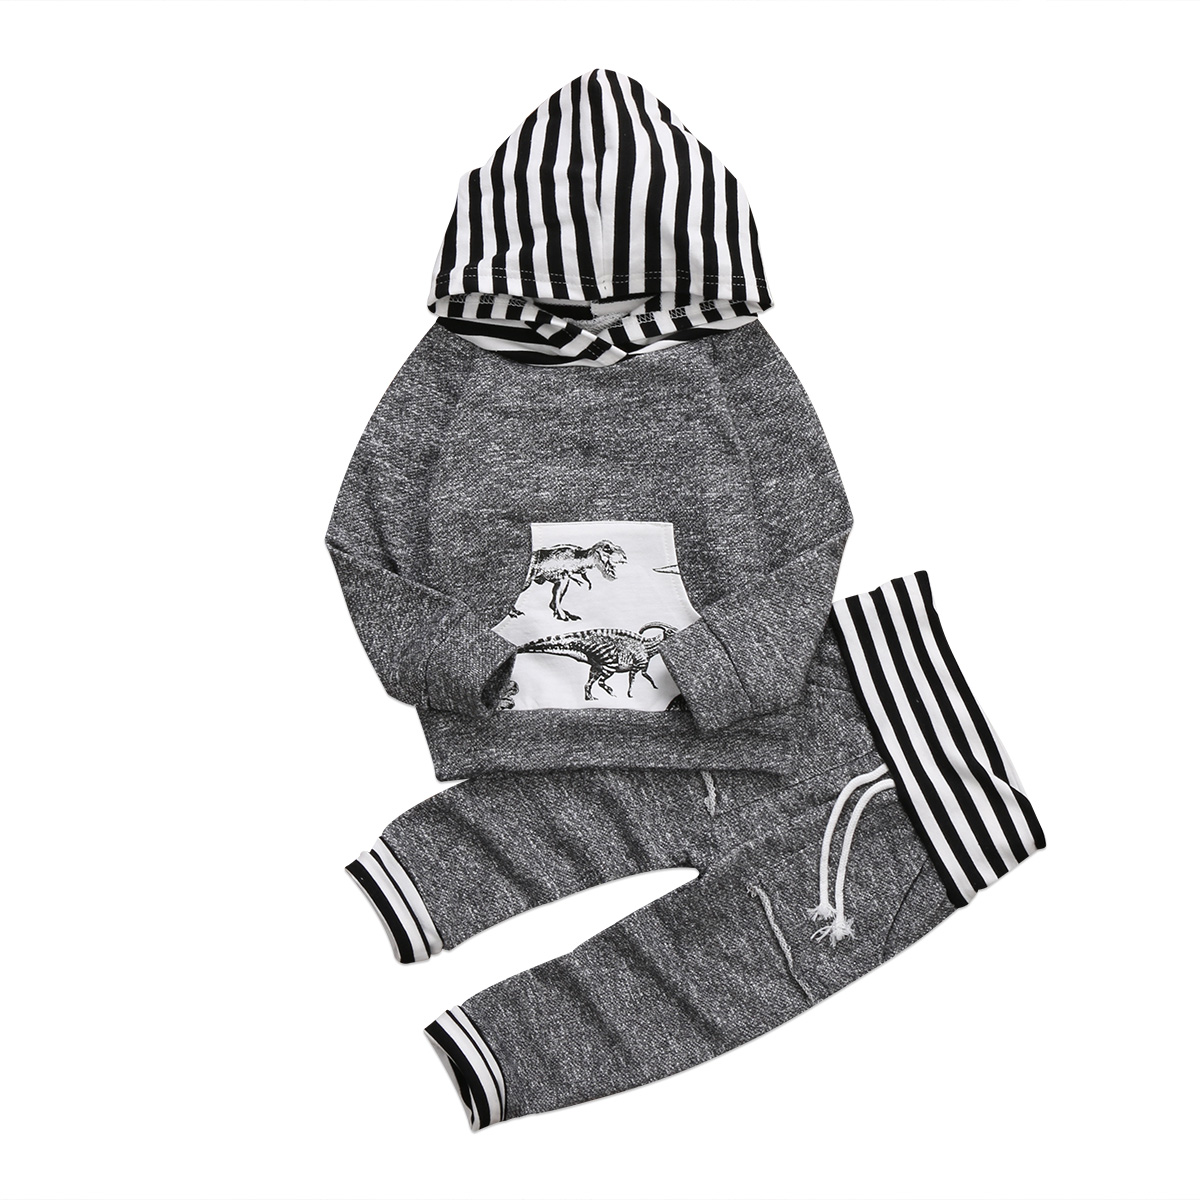 Newborn Infant Kid Baby Boy Clothes Set Dinosaur Gray Boys Clothing Autumn Hoodies Tops Long Pants Costume Cotton Outfit 2PCs newborn baby boy girl 5 pcs clothing set cotton cartoon monk tops pants bib hats infant clothes 0 3 months hight quality